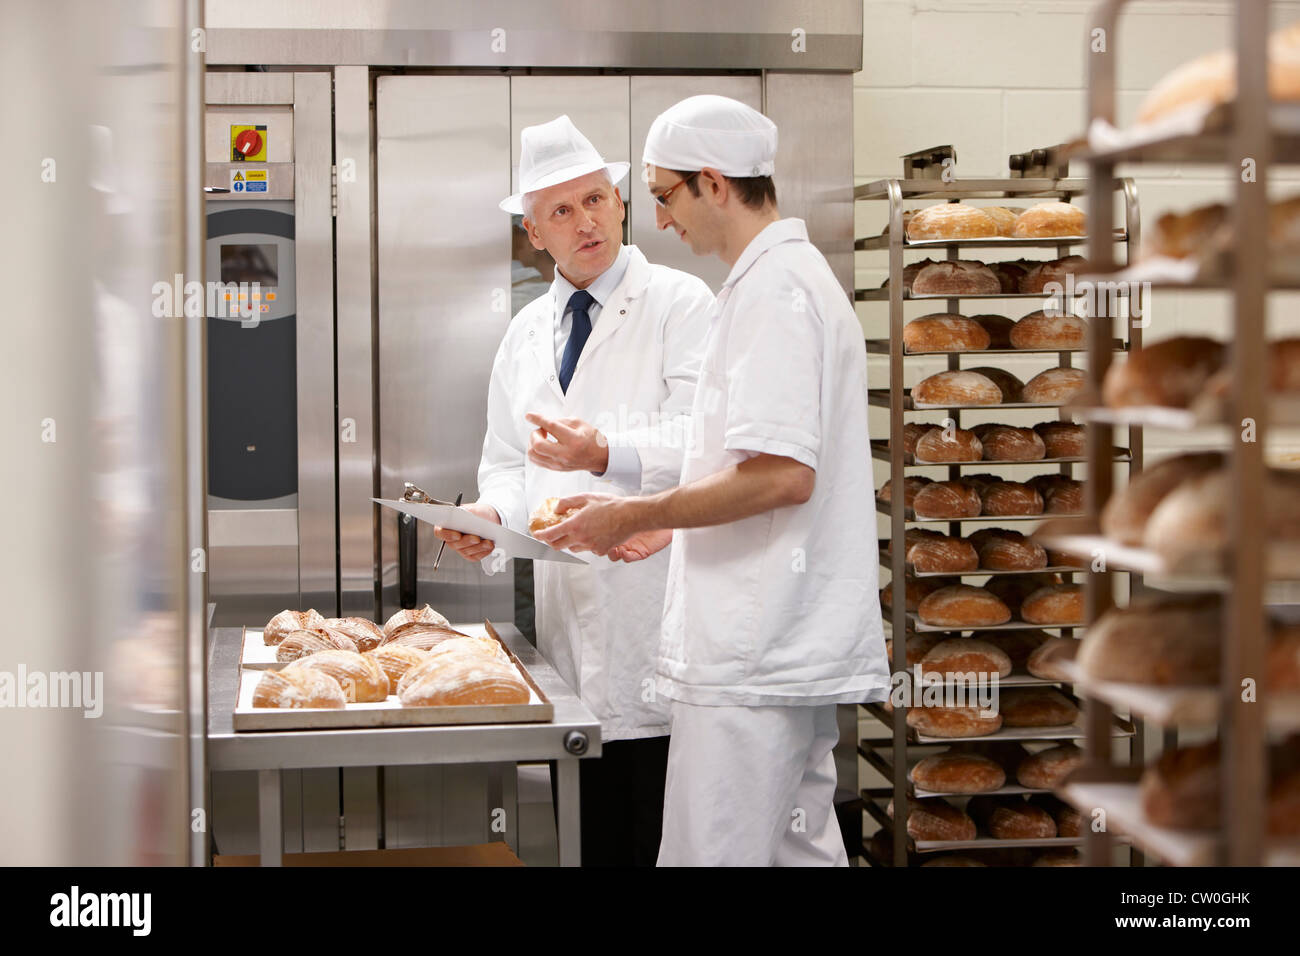 Health inspector with chef in kitchen - Stock Image